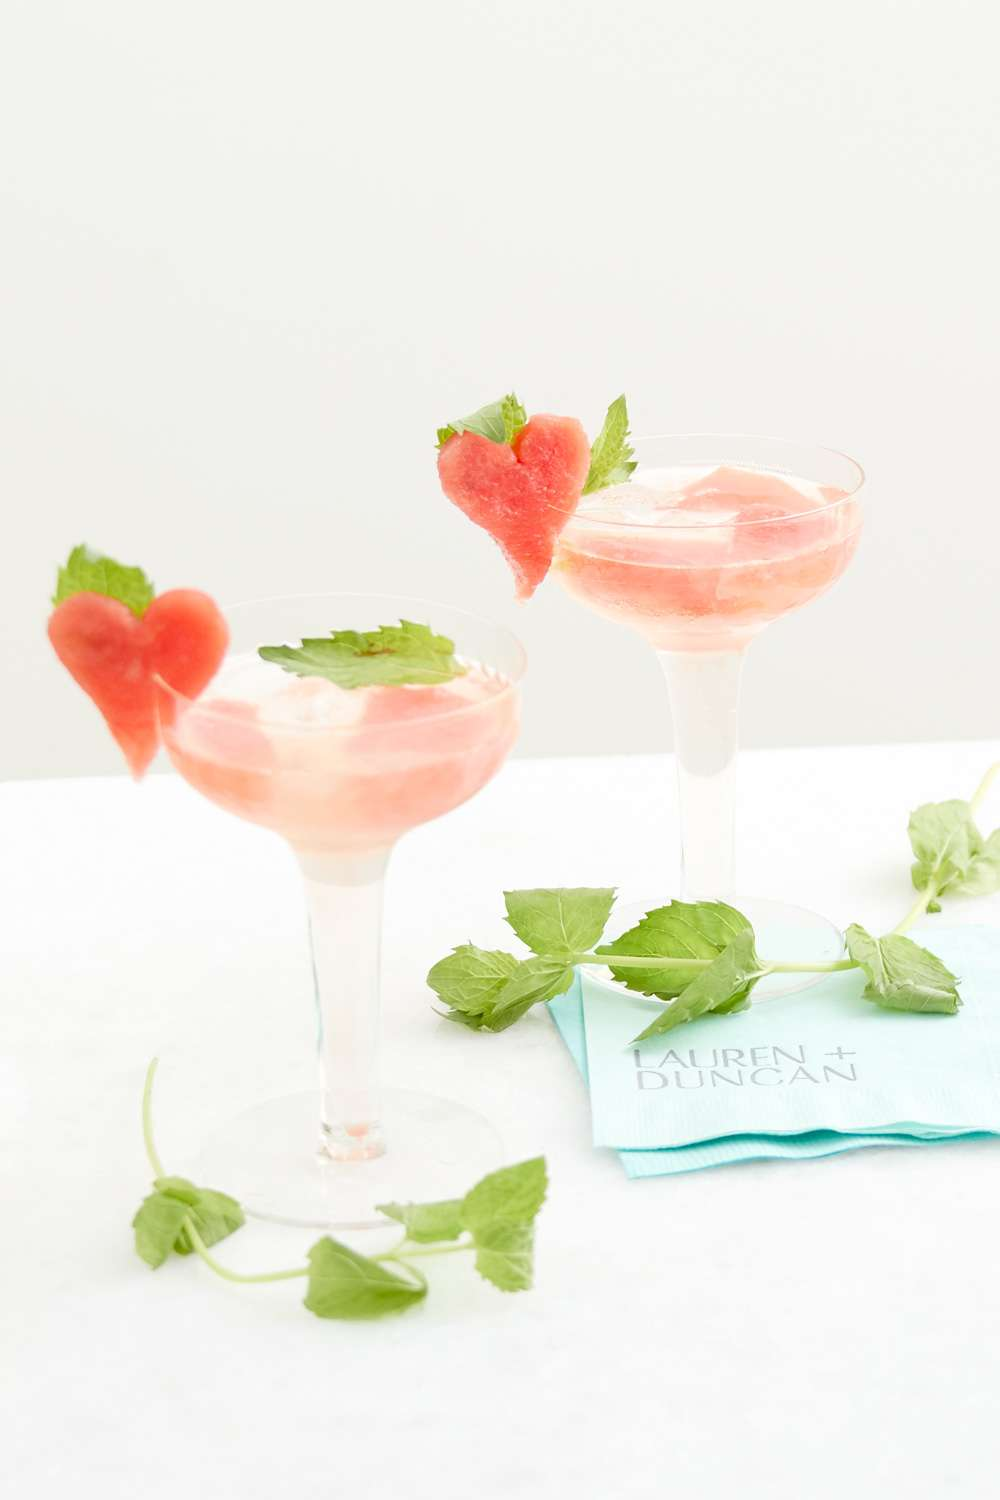 Watermelon Mint cocktail recipe with prosecco